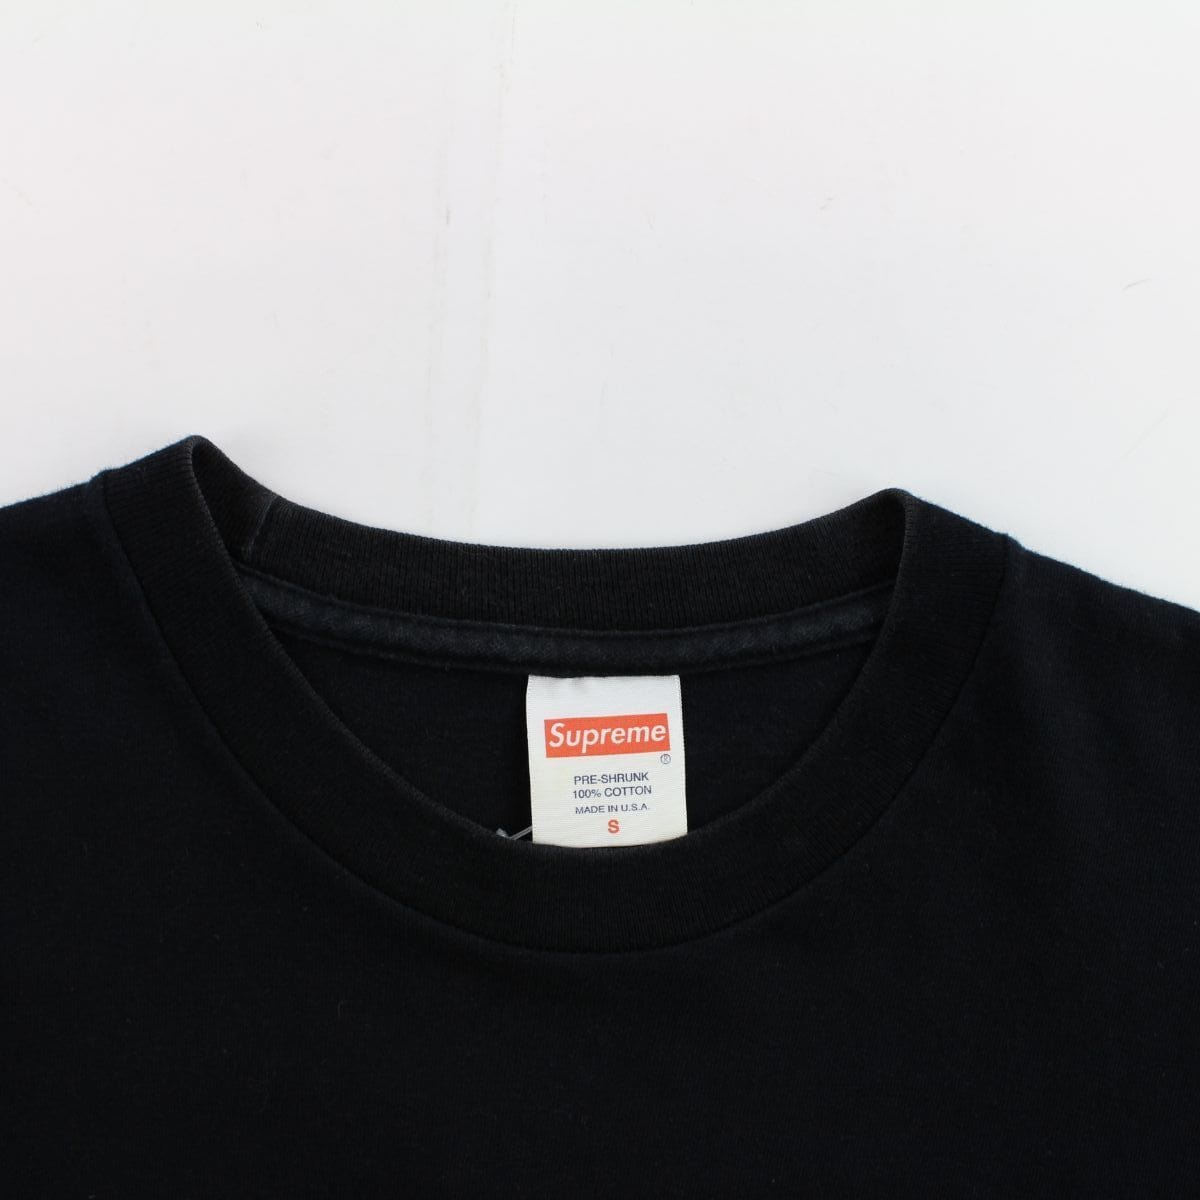 Supreme 20th Anni Box Logo Tee Black - SaruGeneral